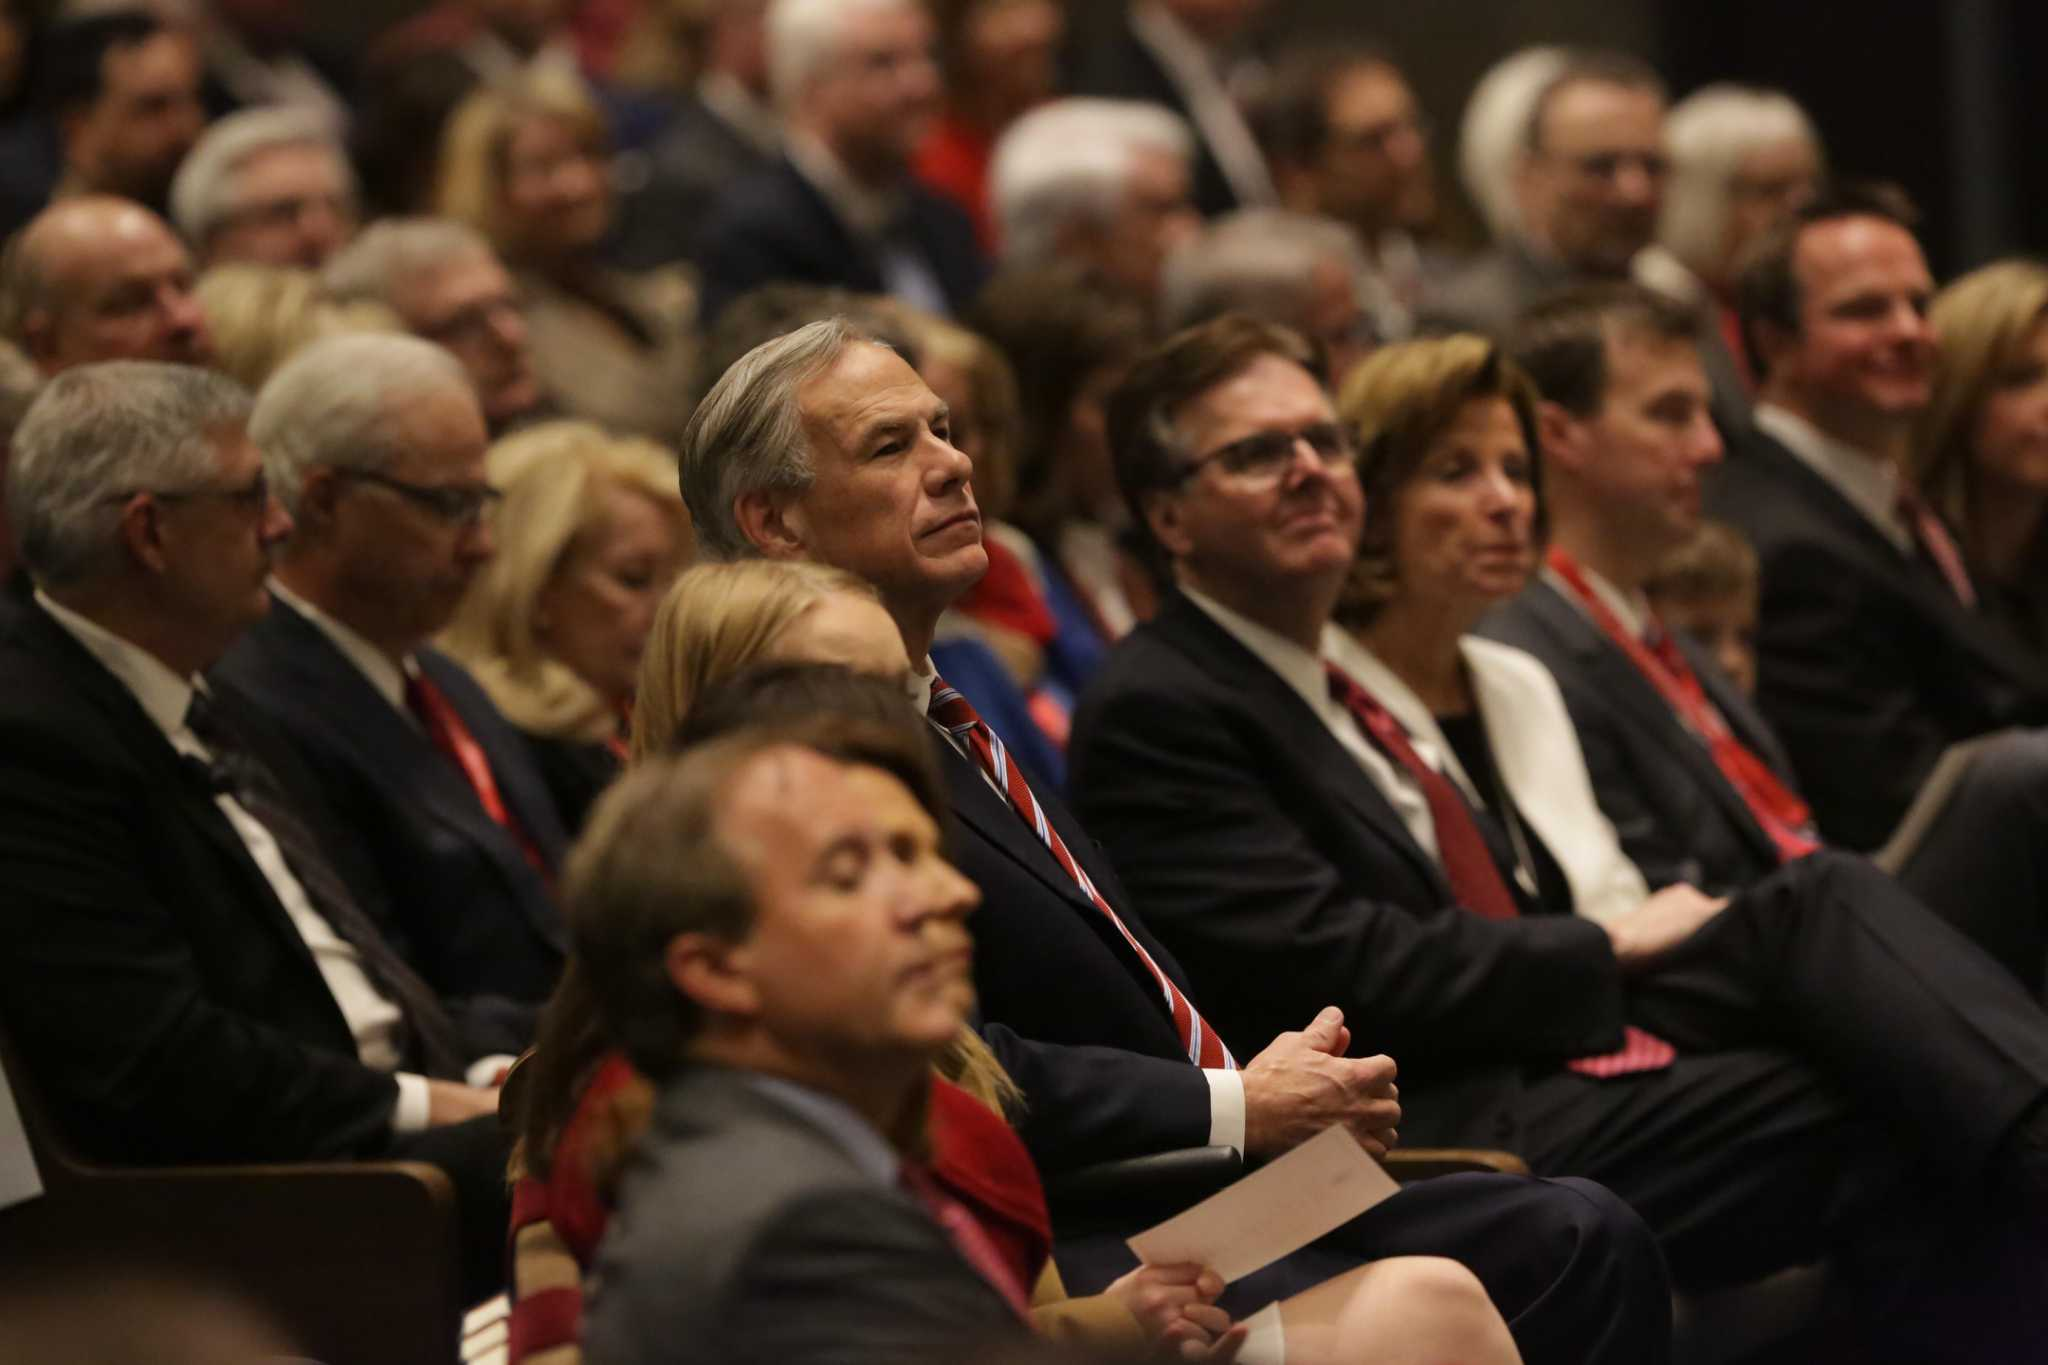 INAUGURATION DAY: Gov. Greg Abbott pushes for policy win in second term